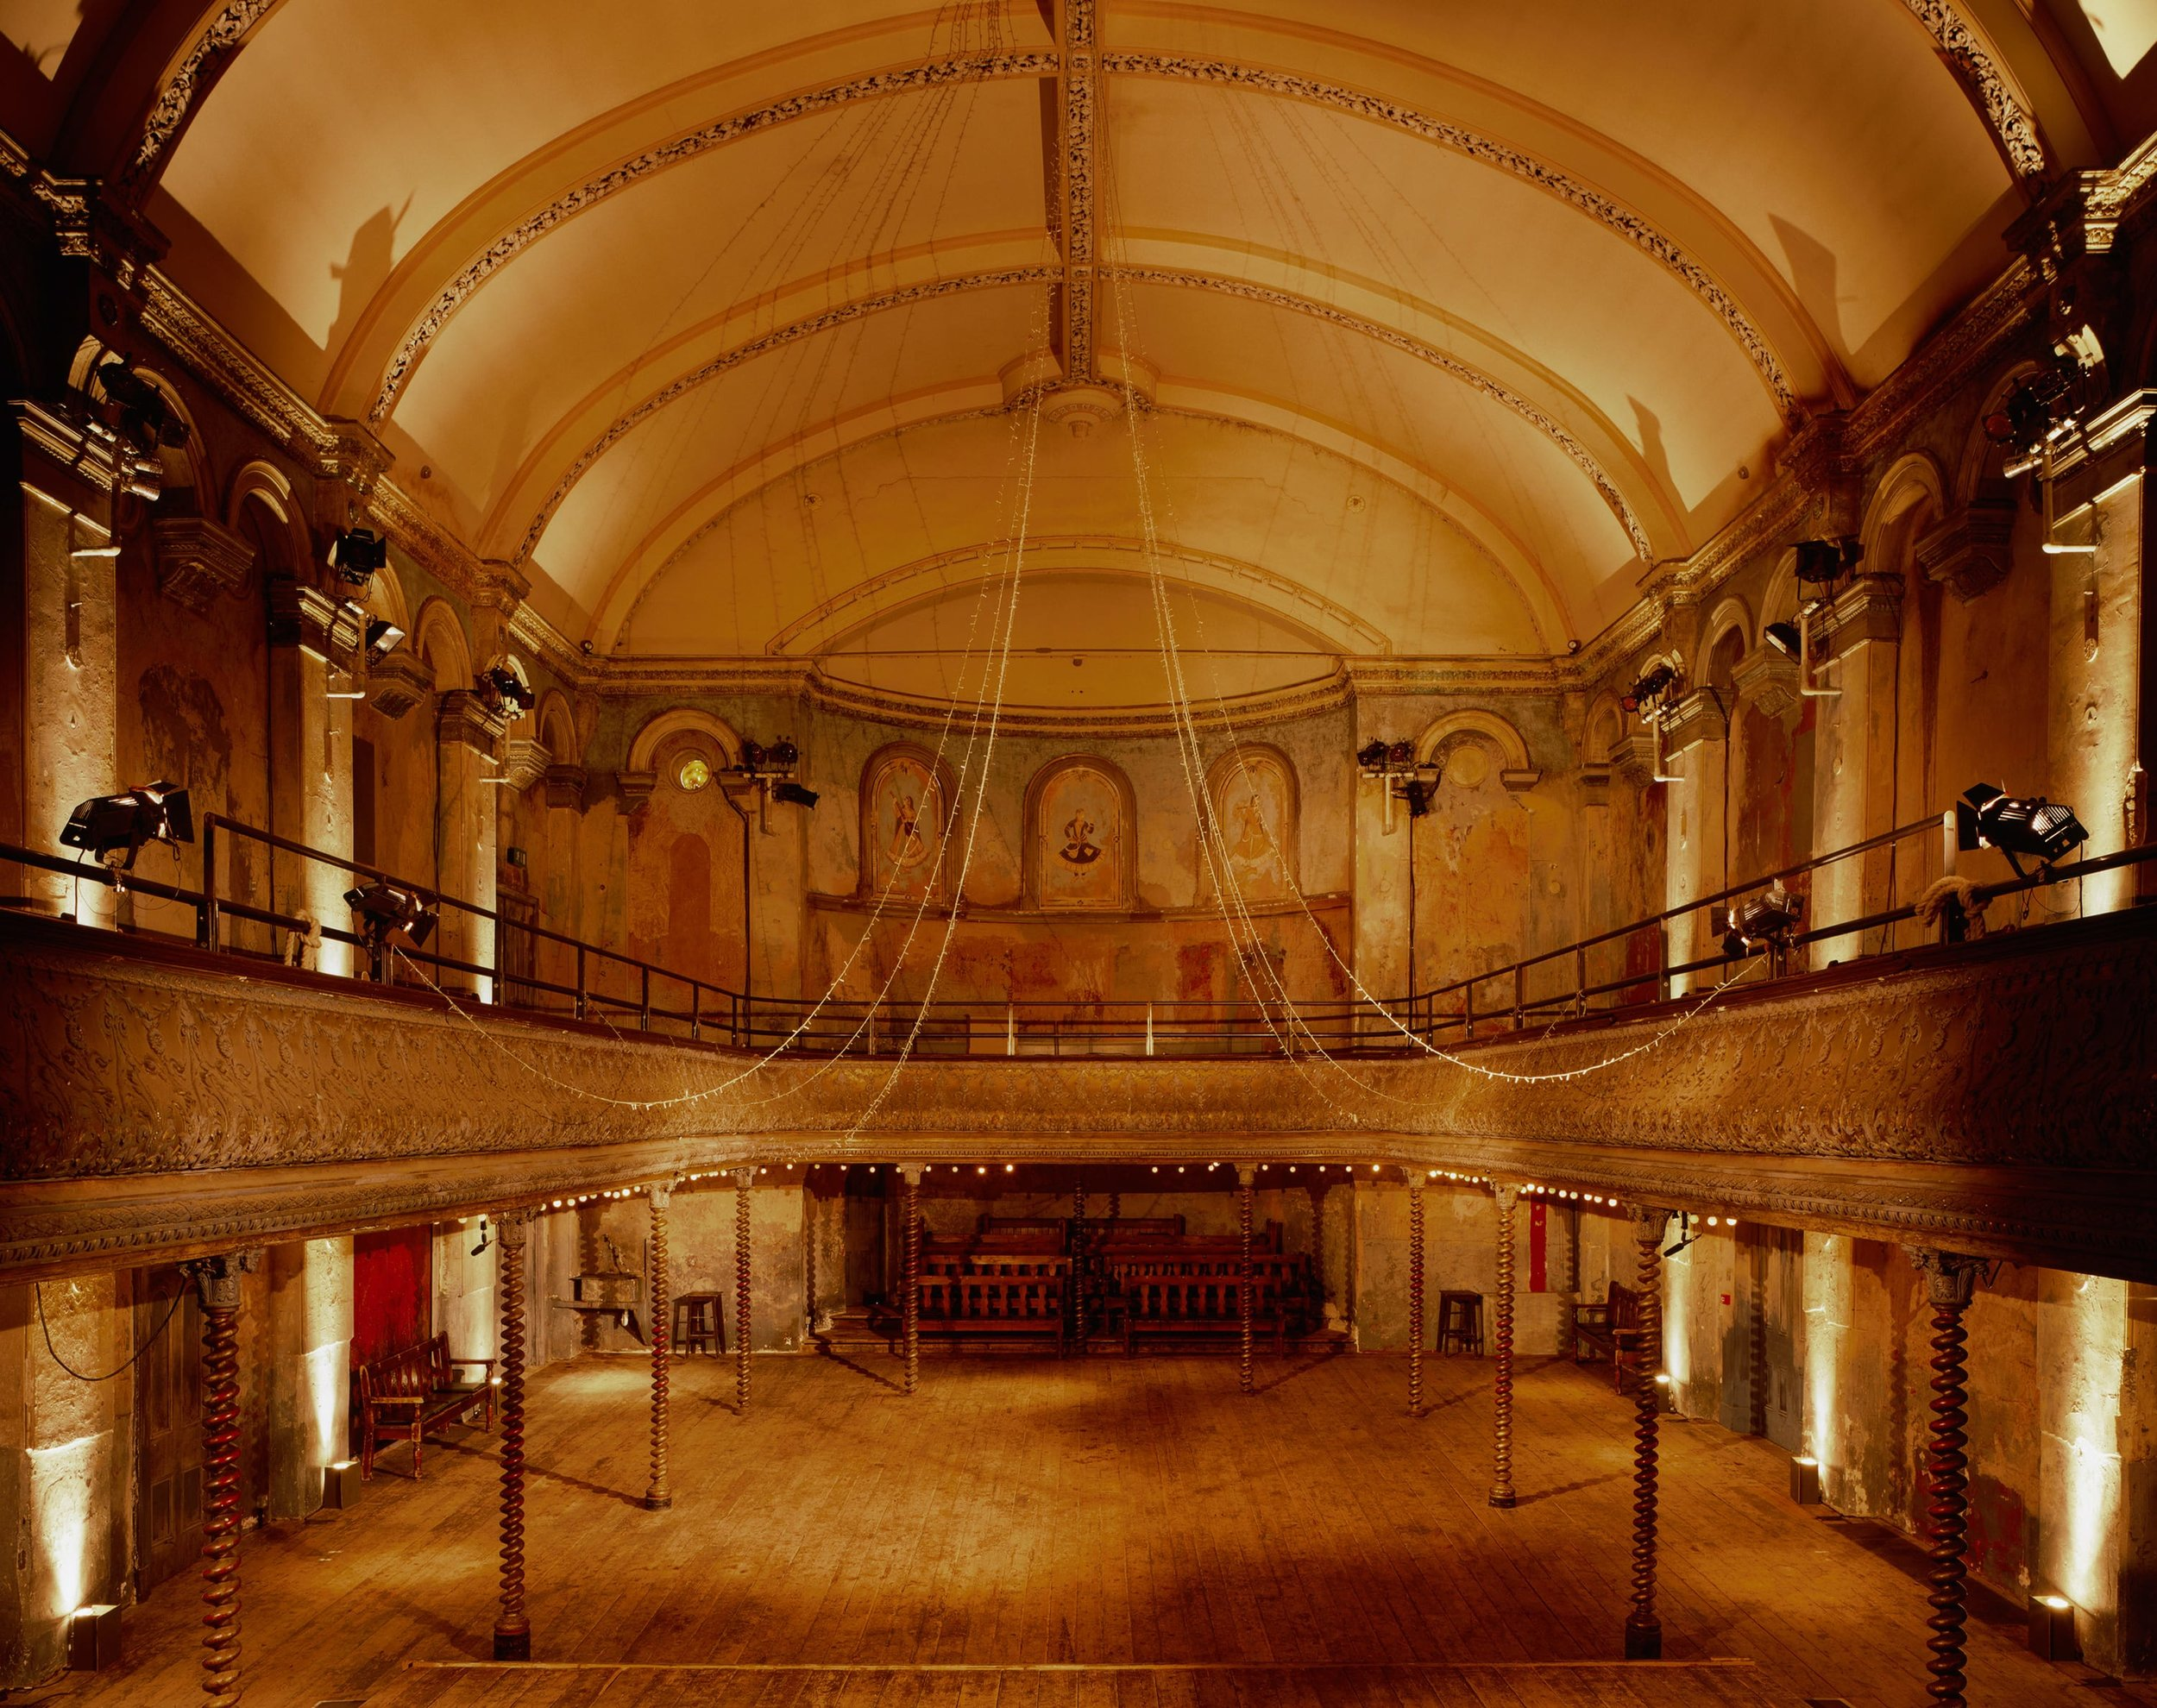 The Auditorium, where the majority of event took place. The view is from the stage.